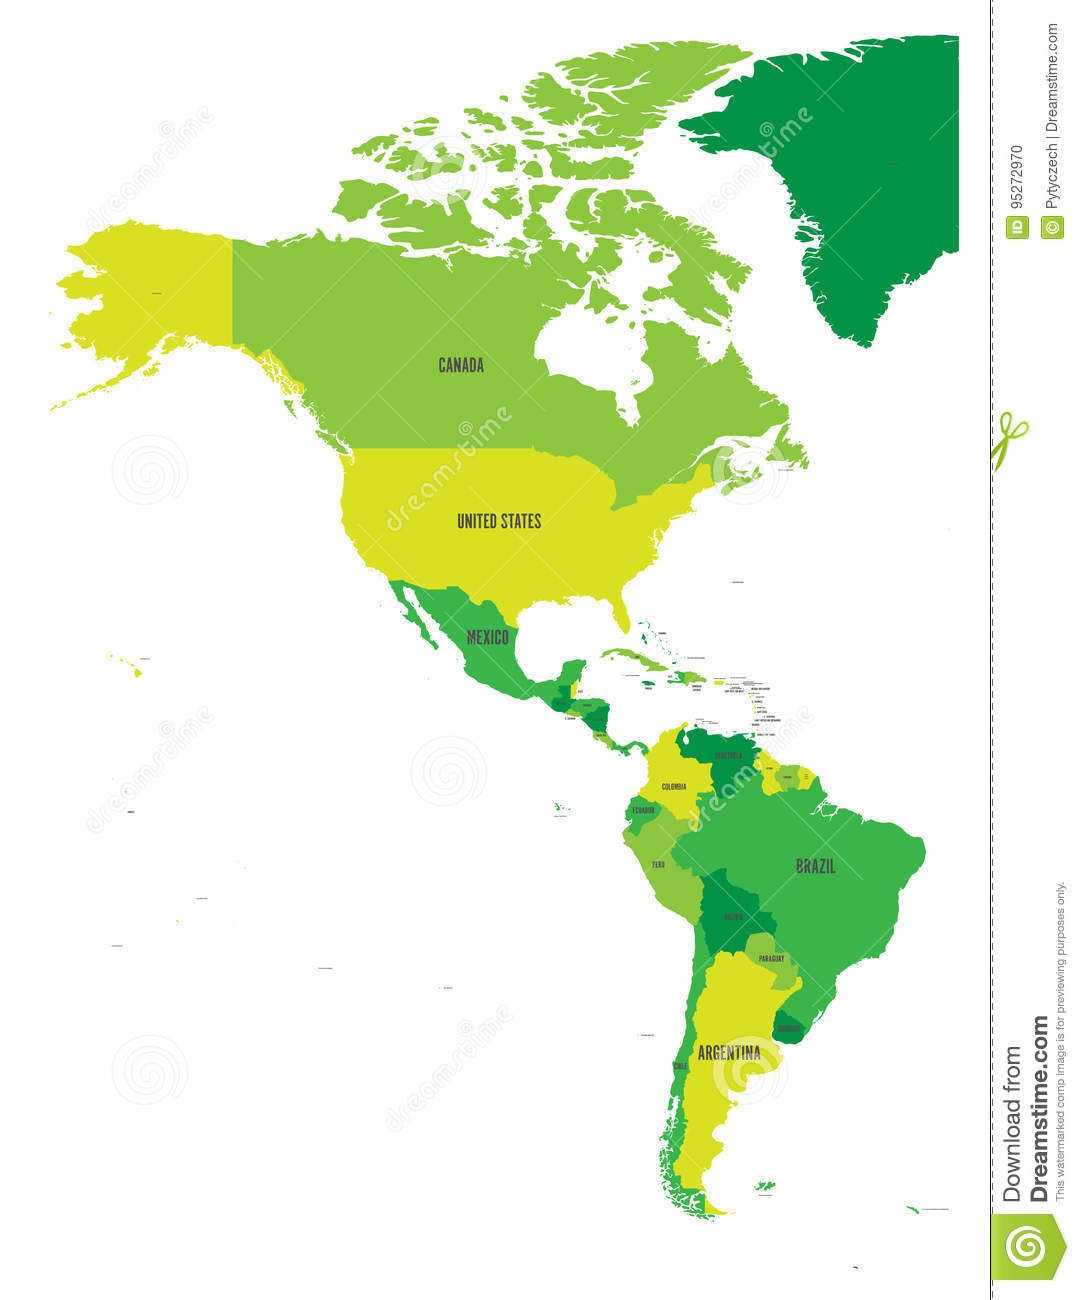 political map of americas in four shades of green on white